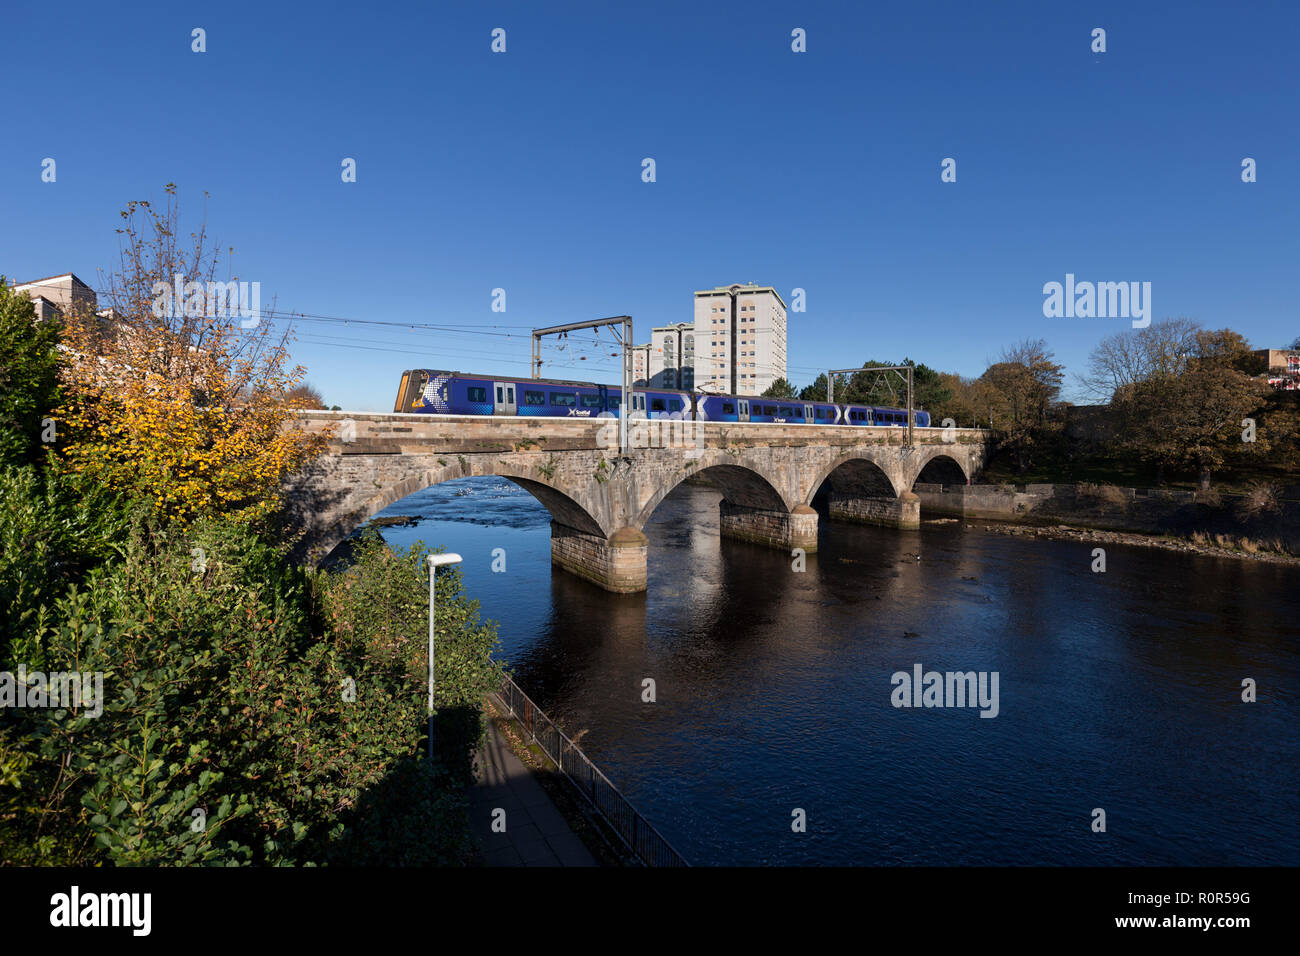 A Scotrail class 380 electric train departing  Ayr crossing the viaduct over the river Ayr - Stock Image